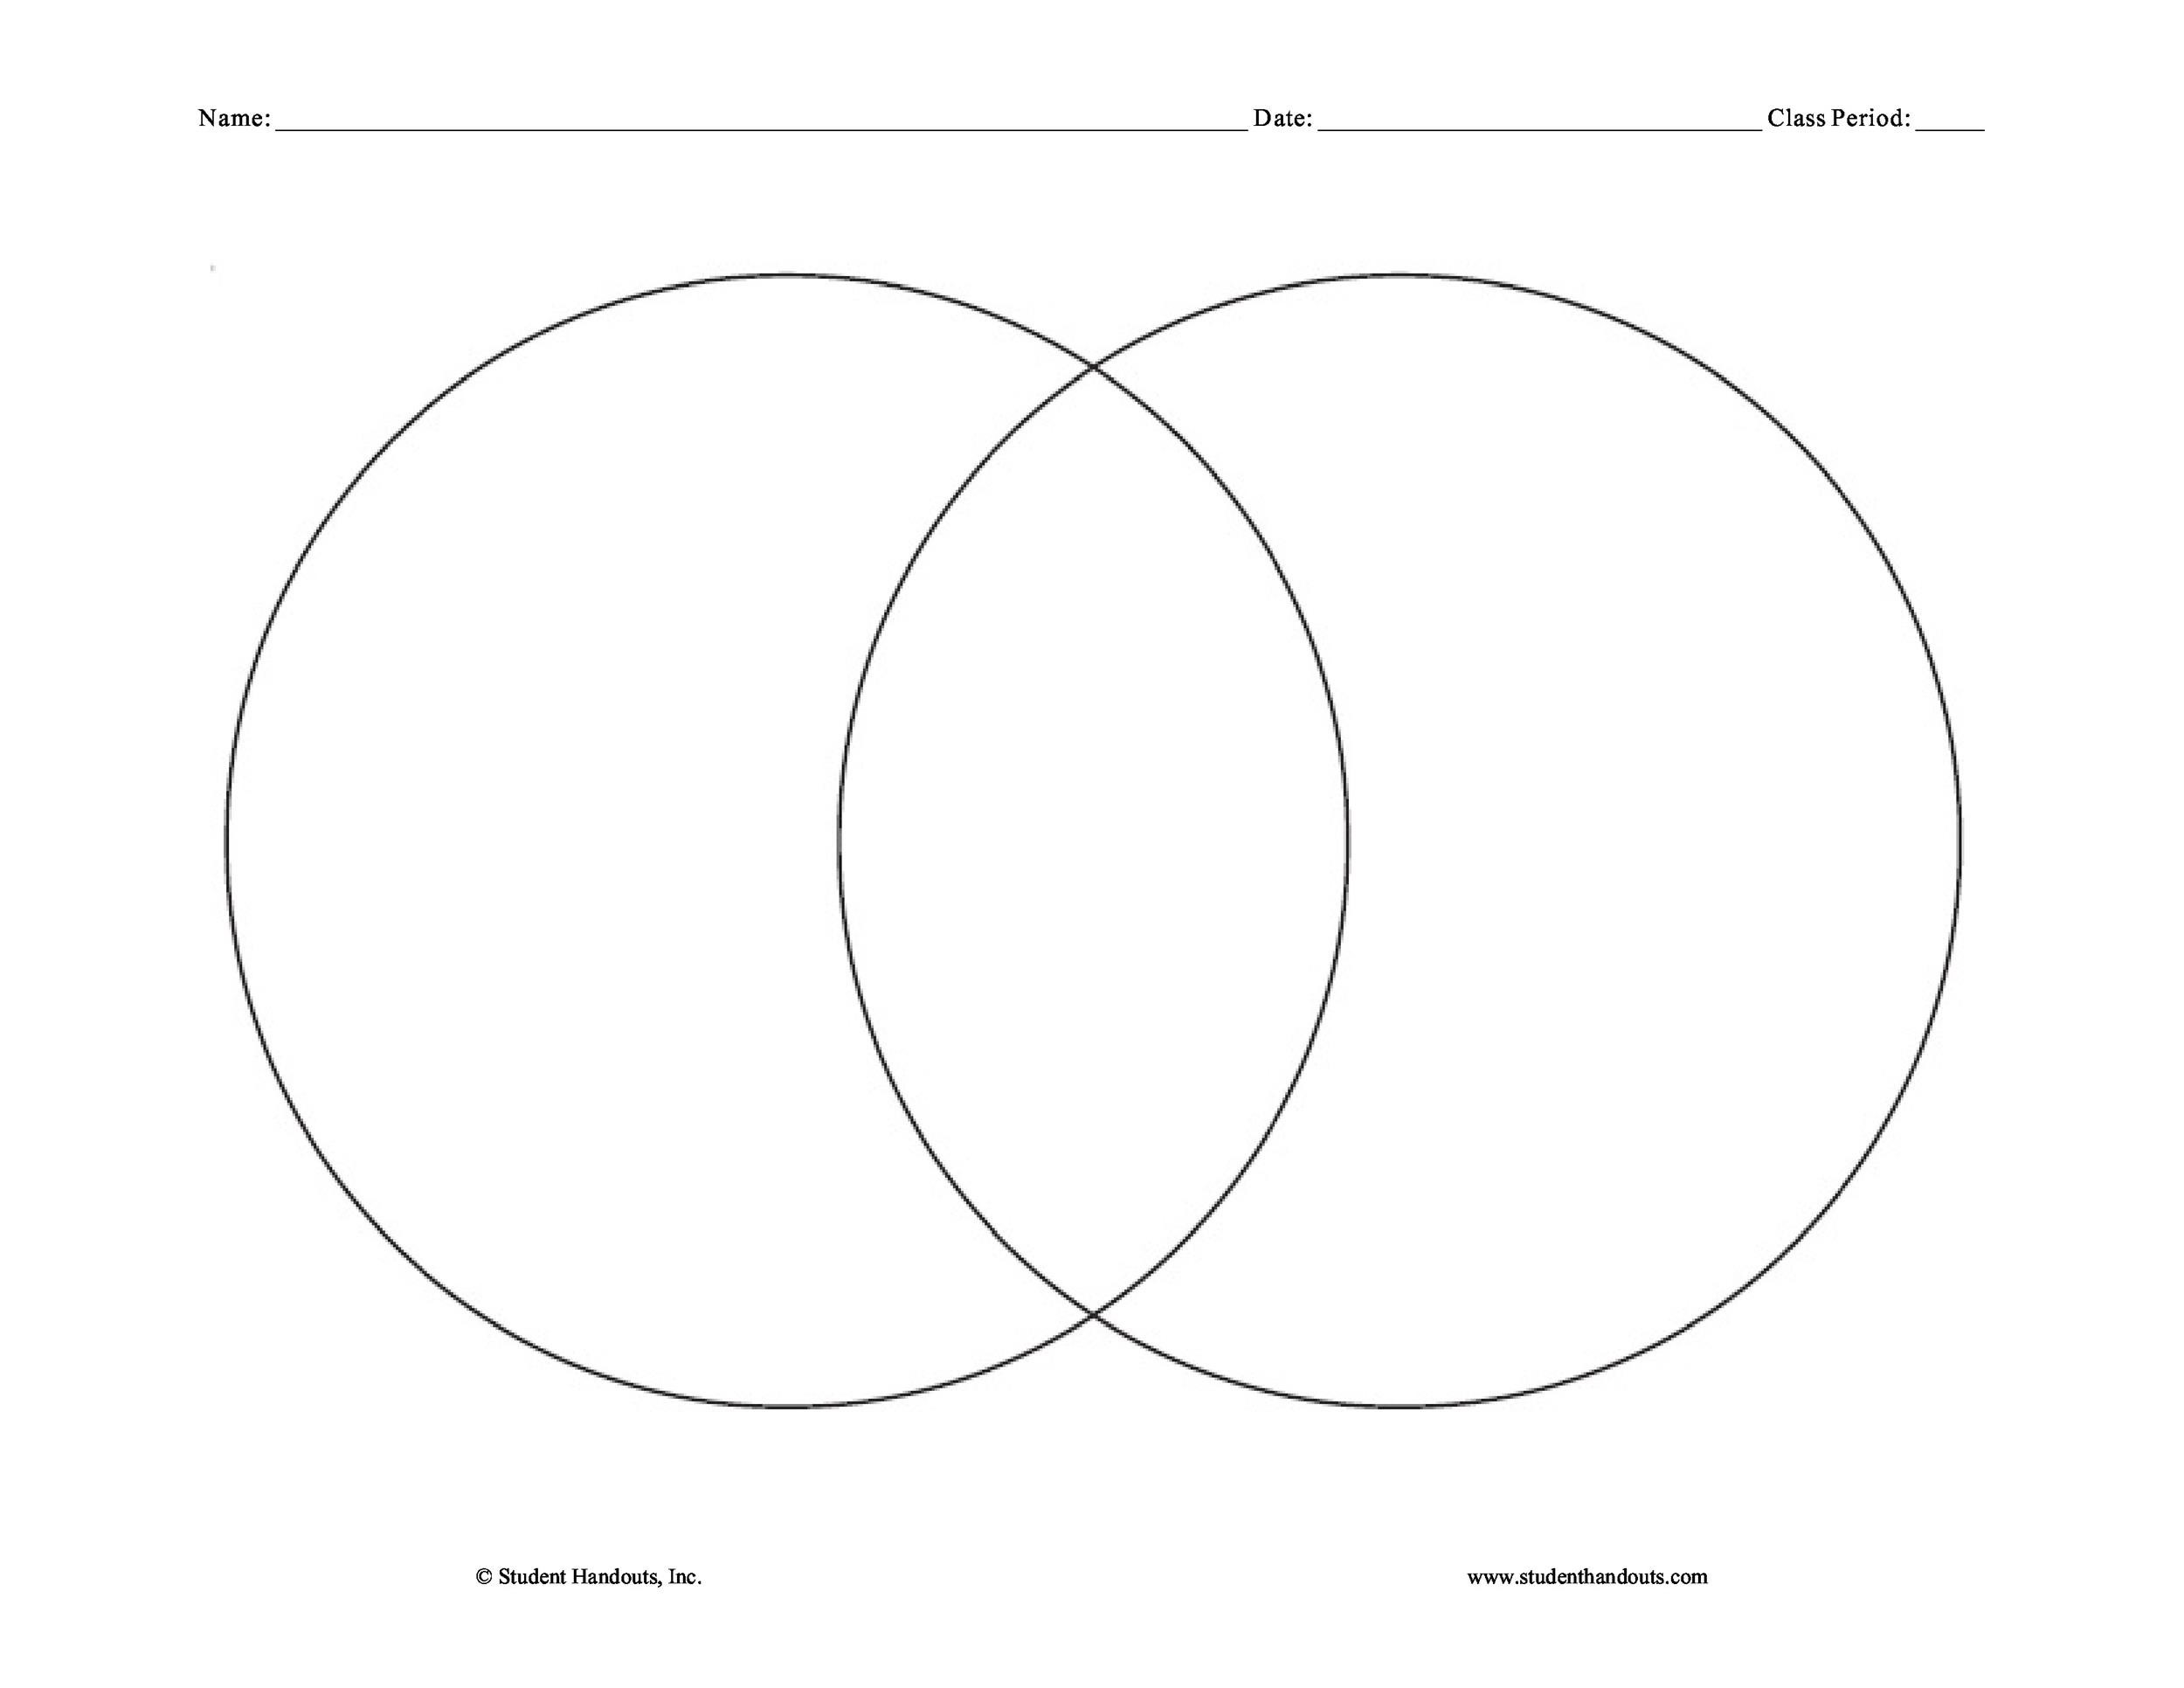 40+ Free Venn Diagram Templates (Word, PDF) - Template Lab - circle template